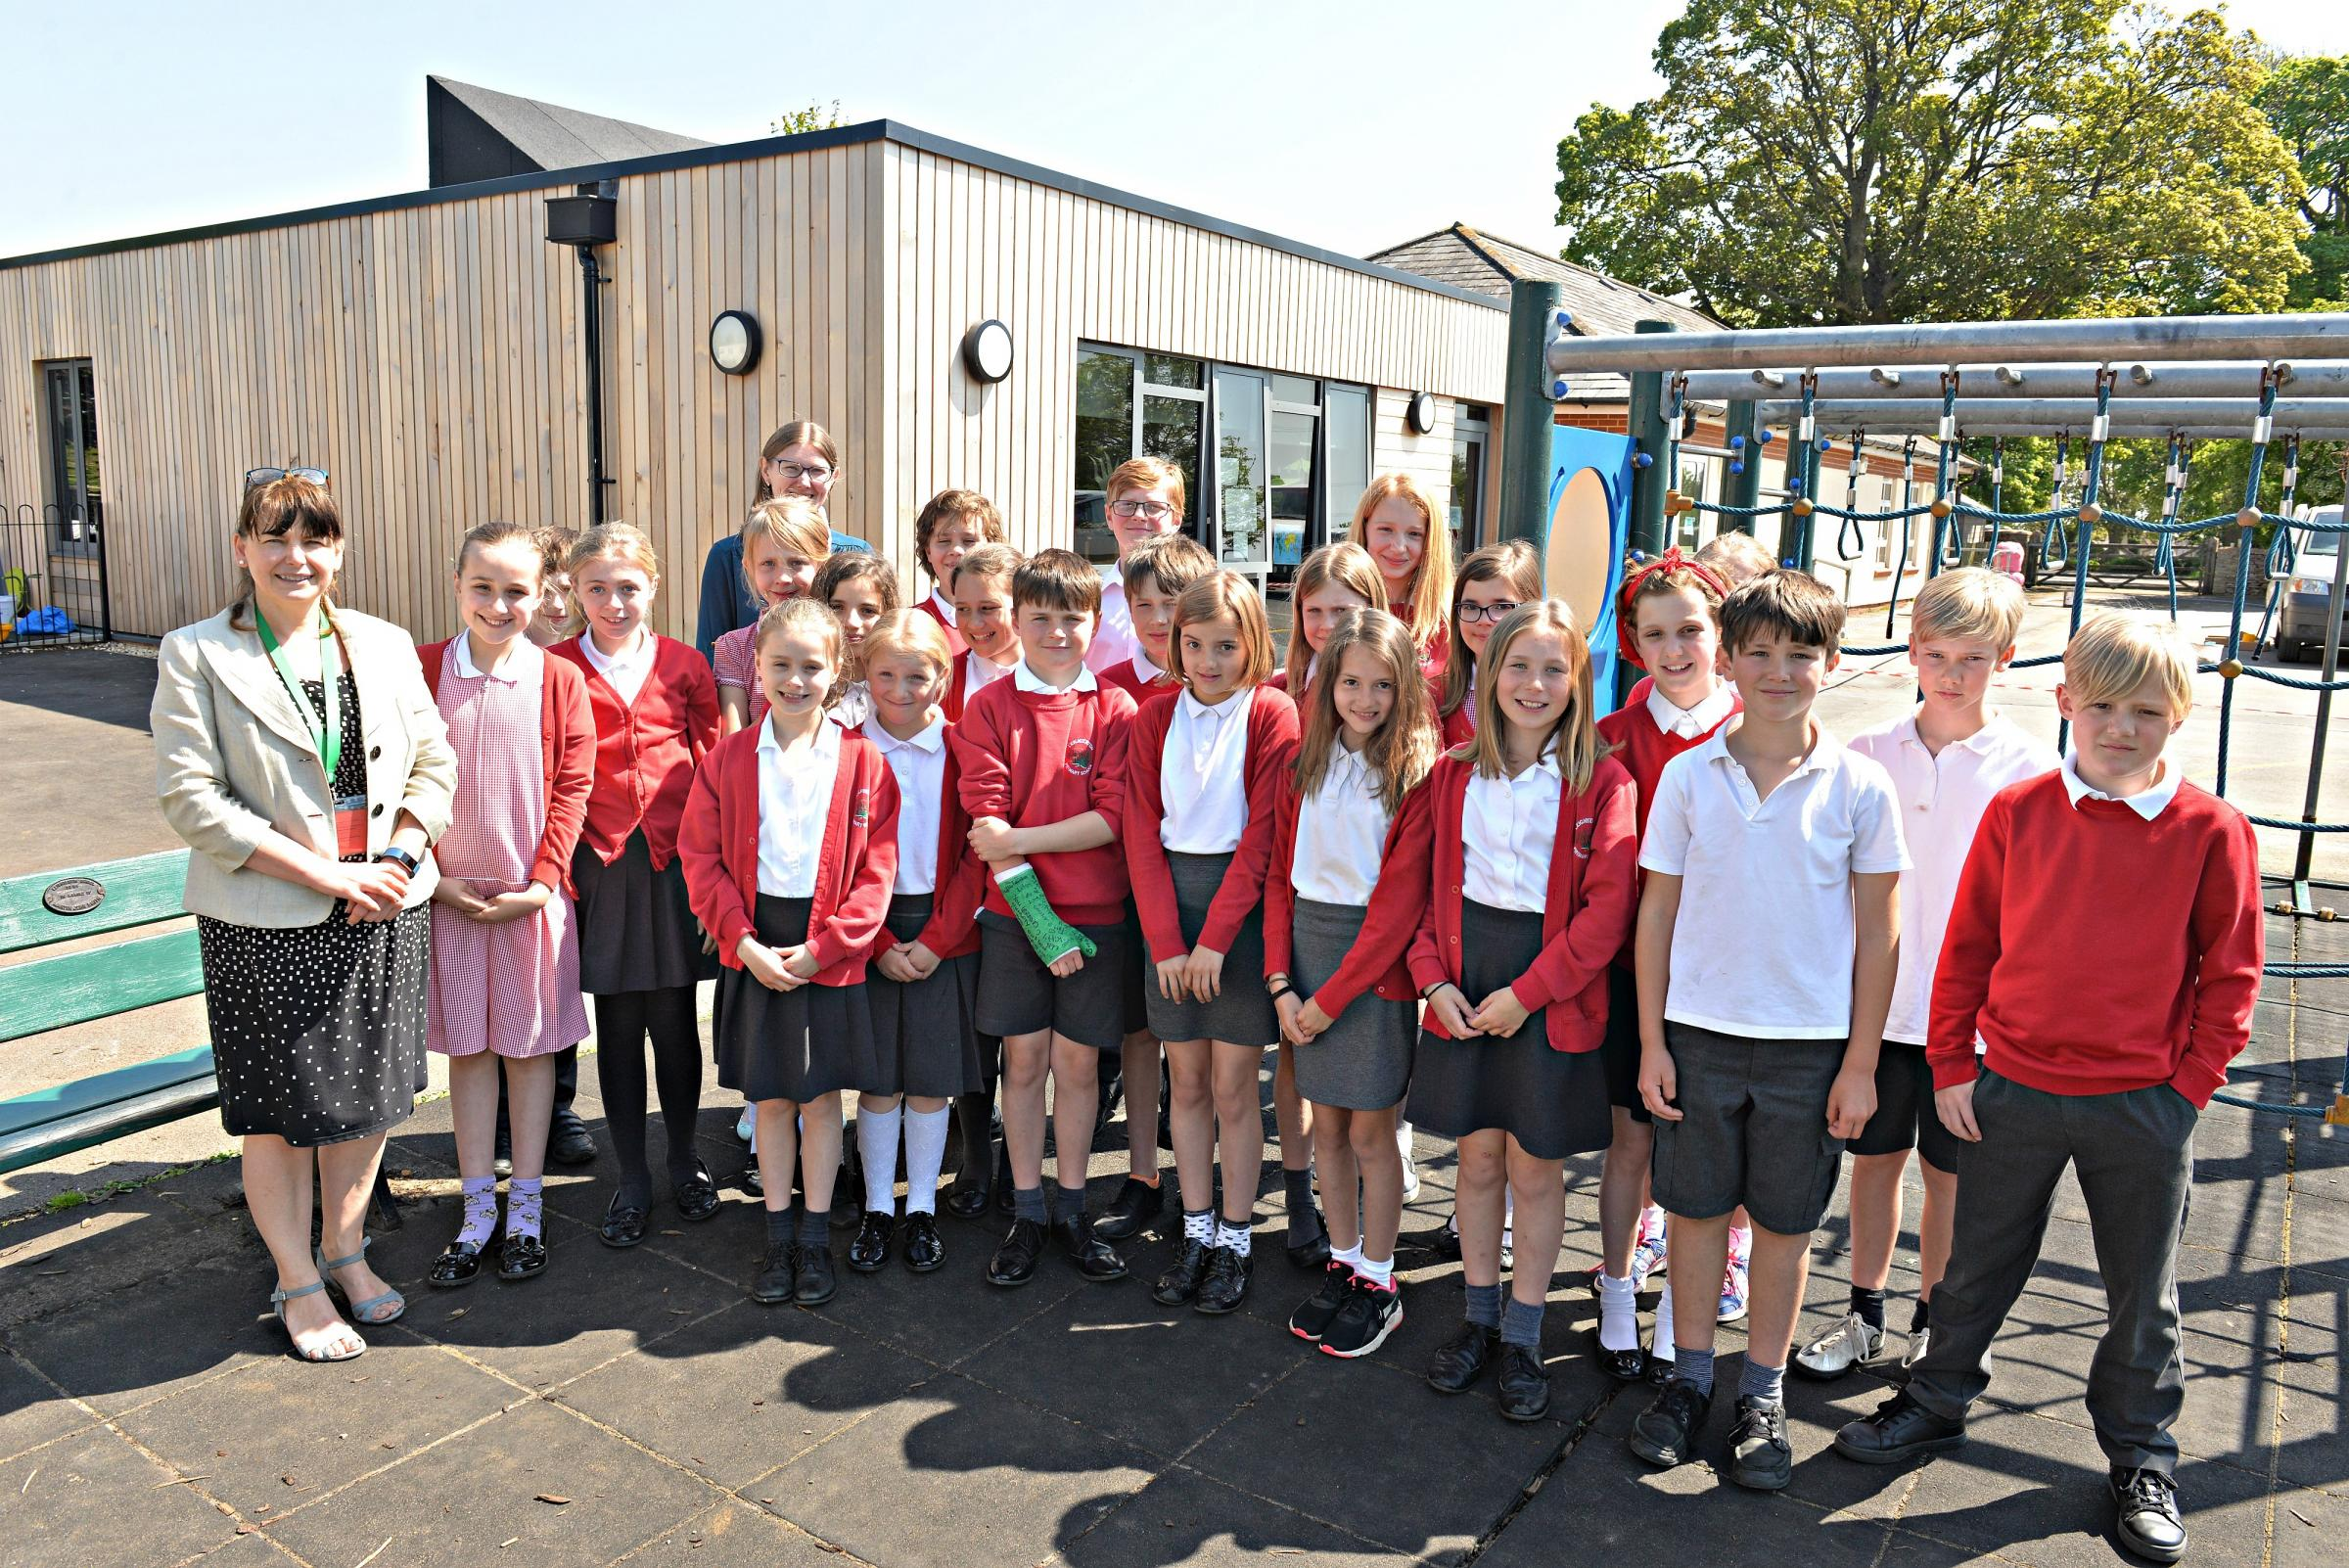 Leighterton Primary School head teacher Meryl Hatfield with Year 5 and 6 pupils happy with their new classrooms.